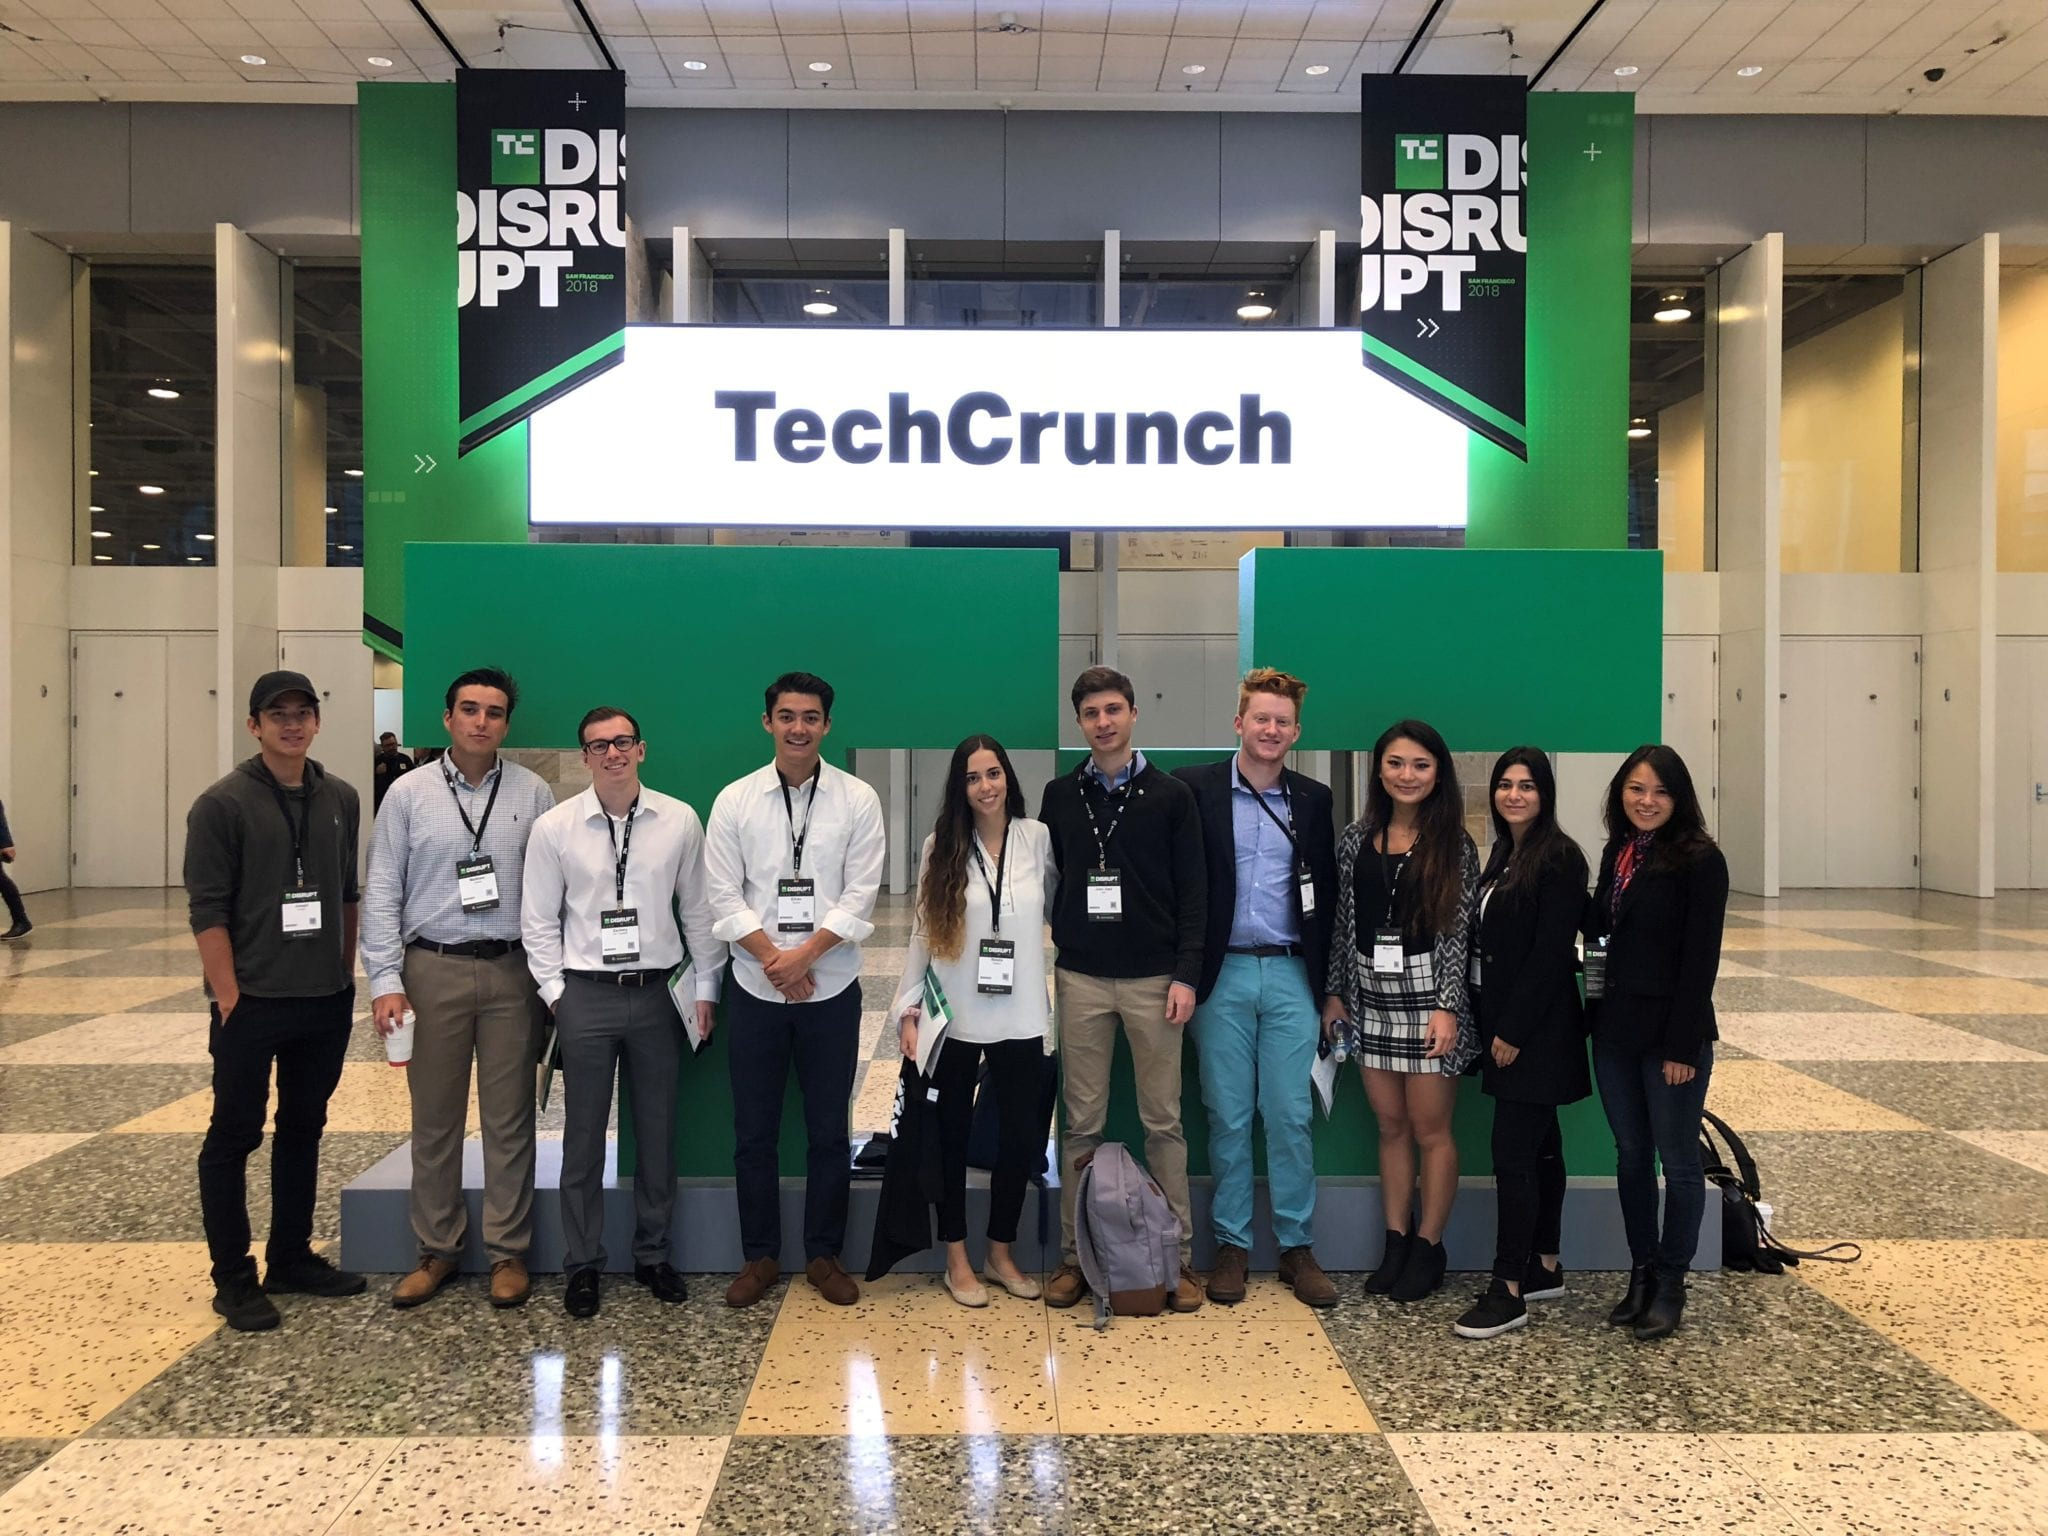 LMU's delegation at TechCrunch